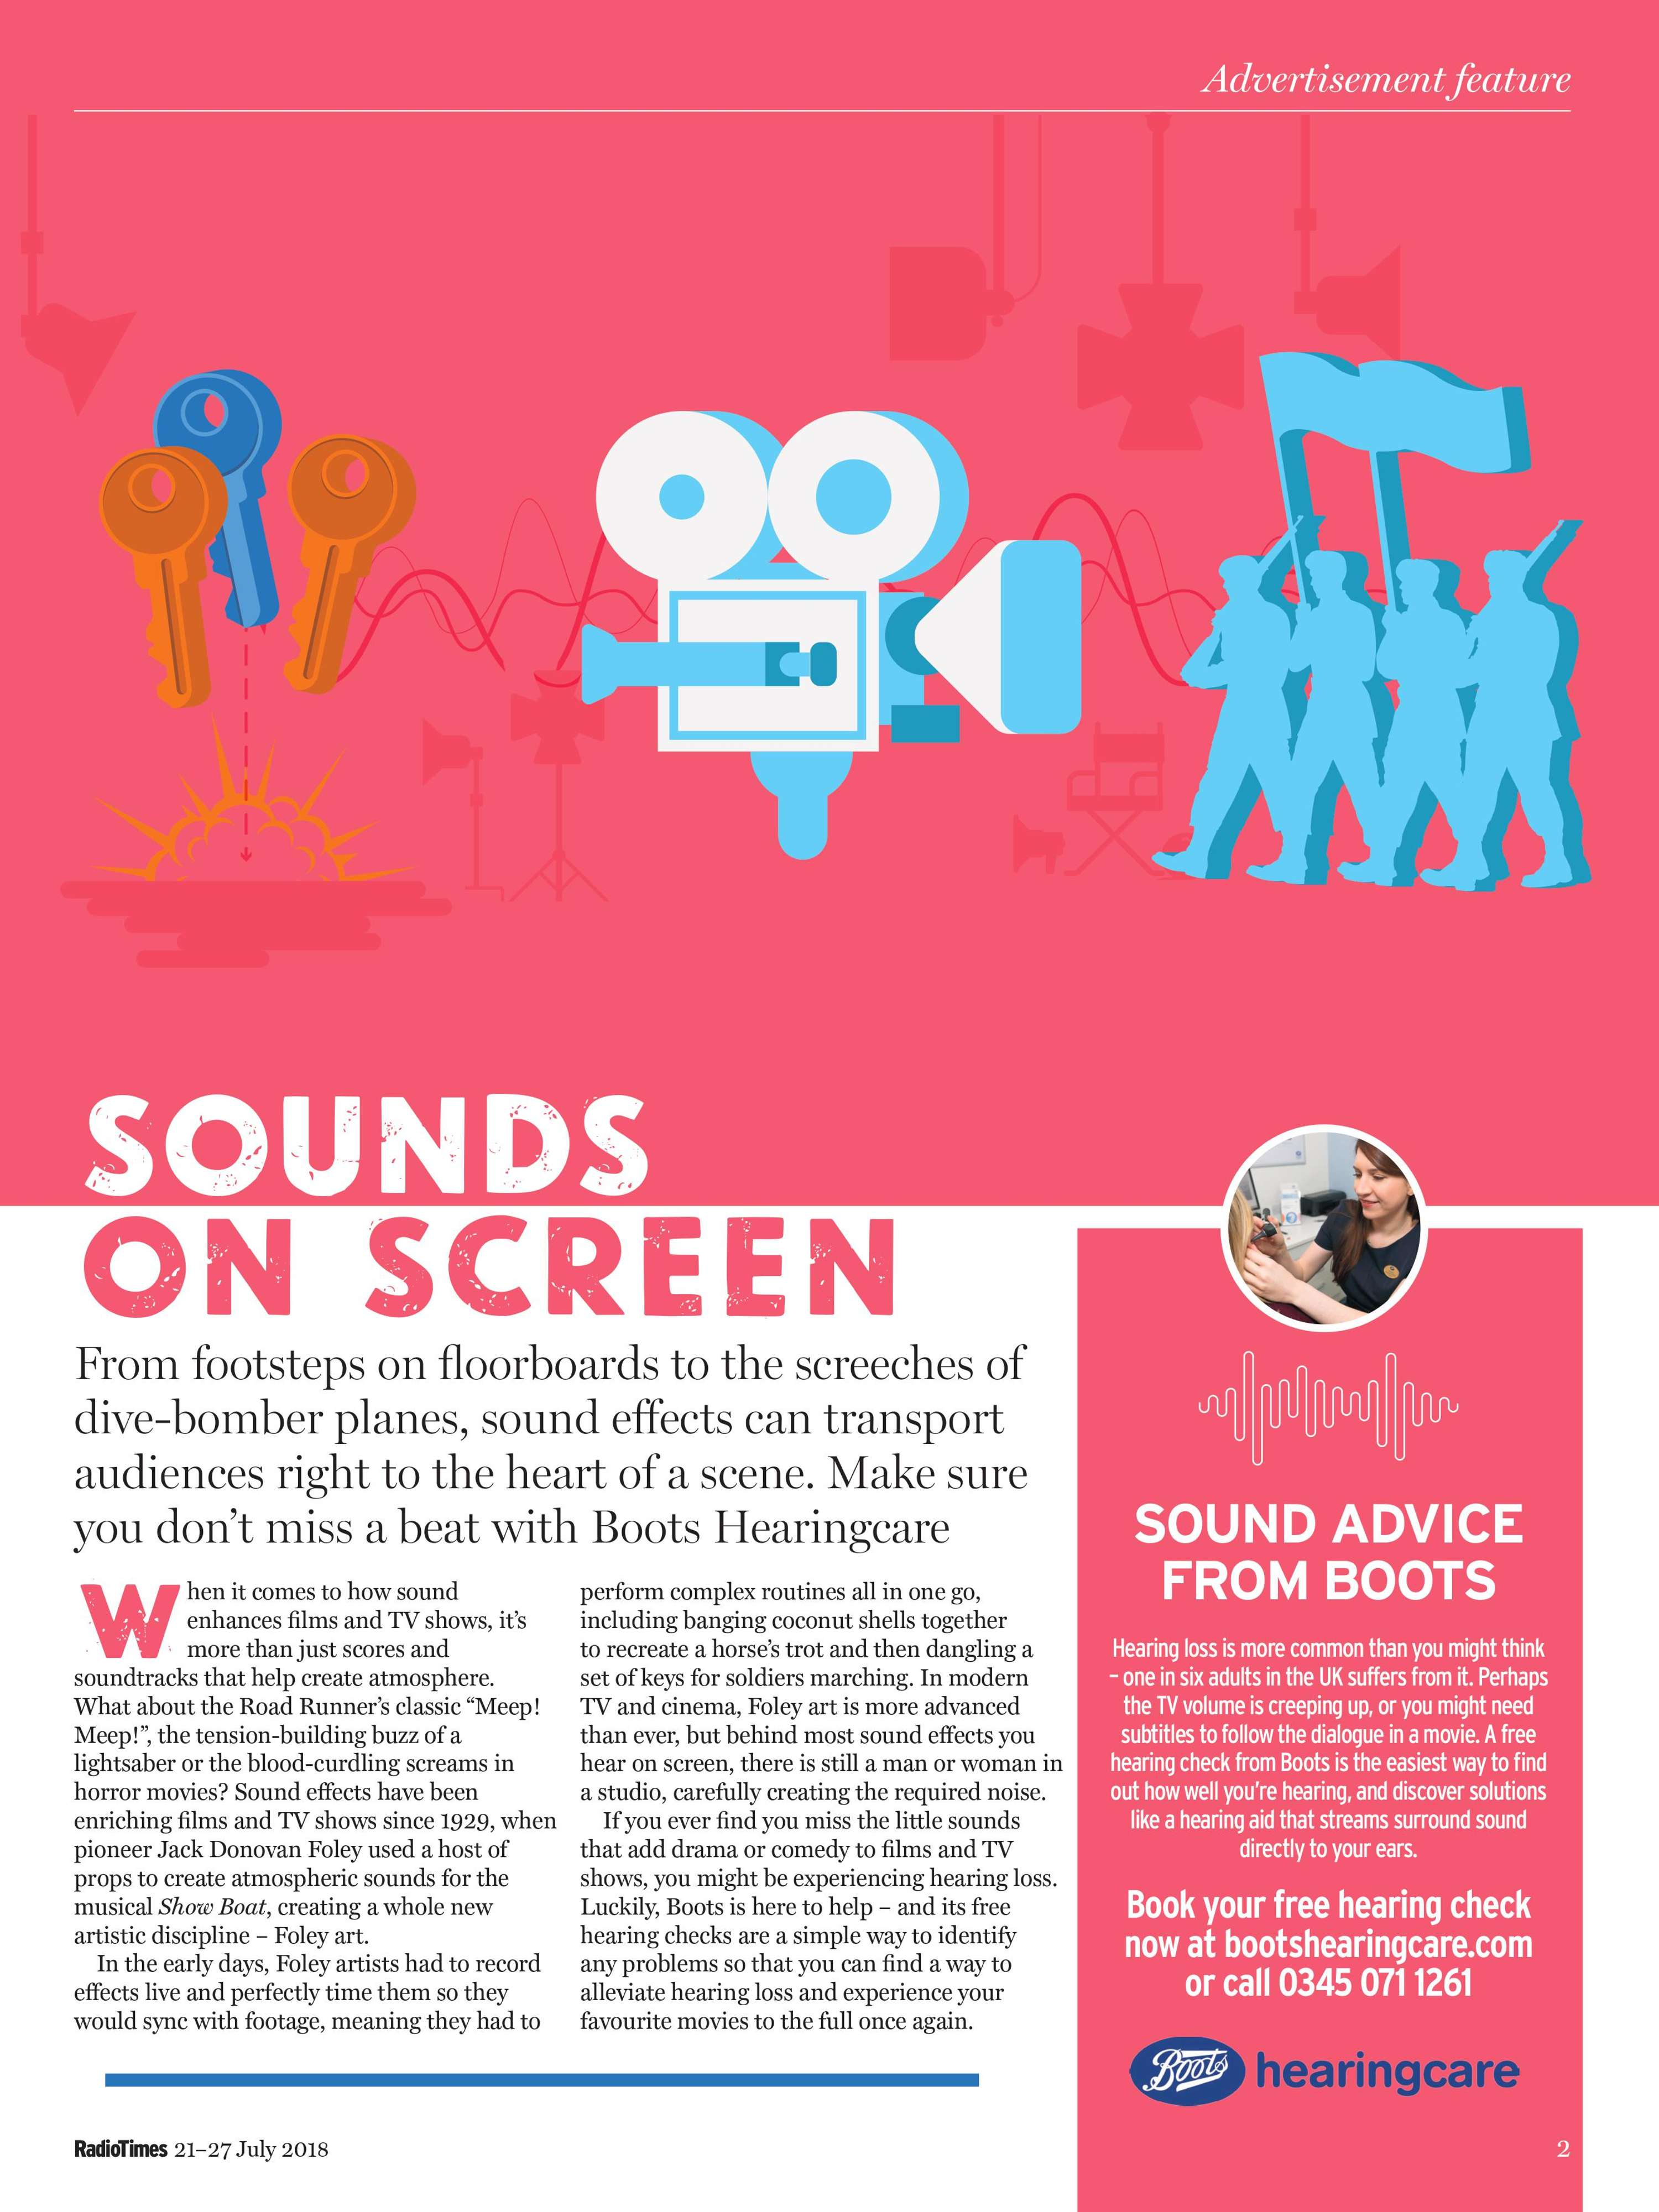 Sounds On Screen Campaign | The Dots